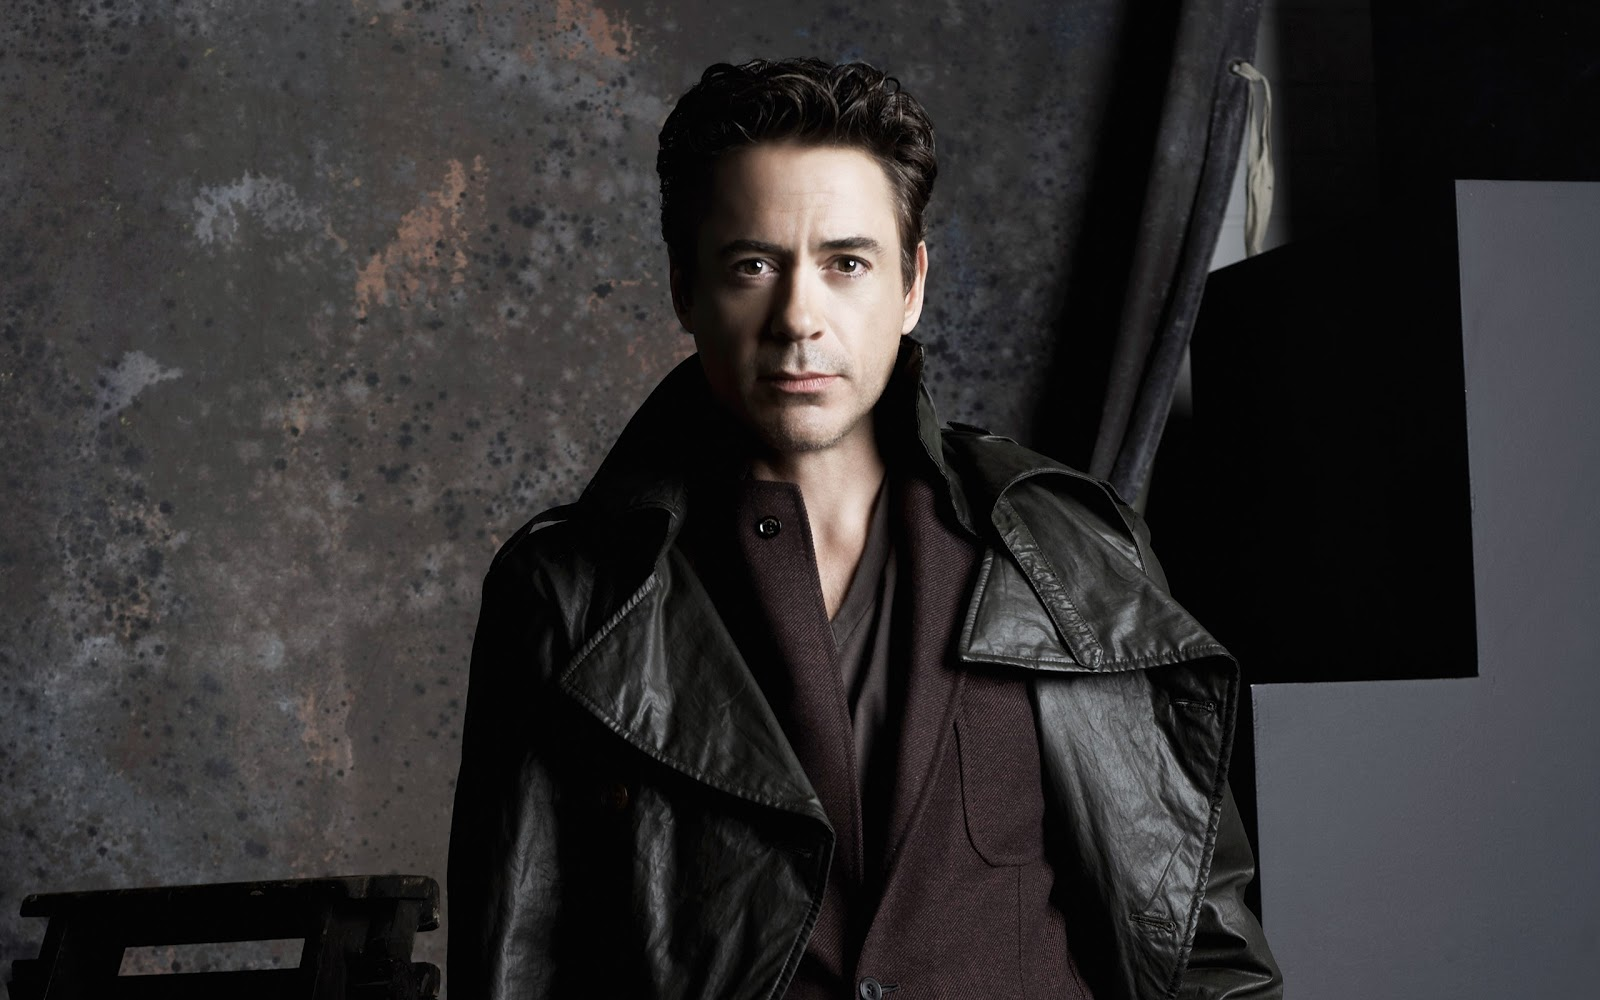 http://3.bp.blogspot.com/-ES9TSYc4ebo/ULccPv7SdOI/AAAAAAAAE18/mB4UpQNz4dQ/s1600/men-robert-downey-jr-actors-leather-jacket-HD-Wallpapers.jpg